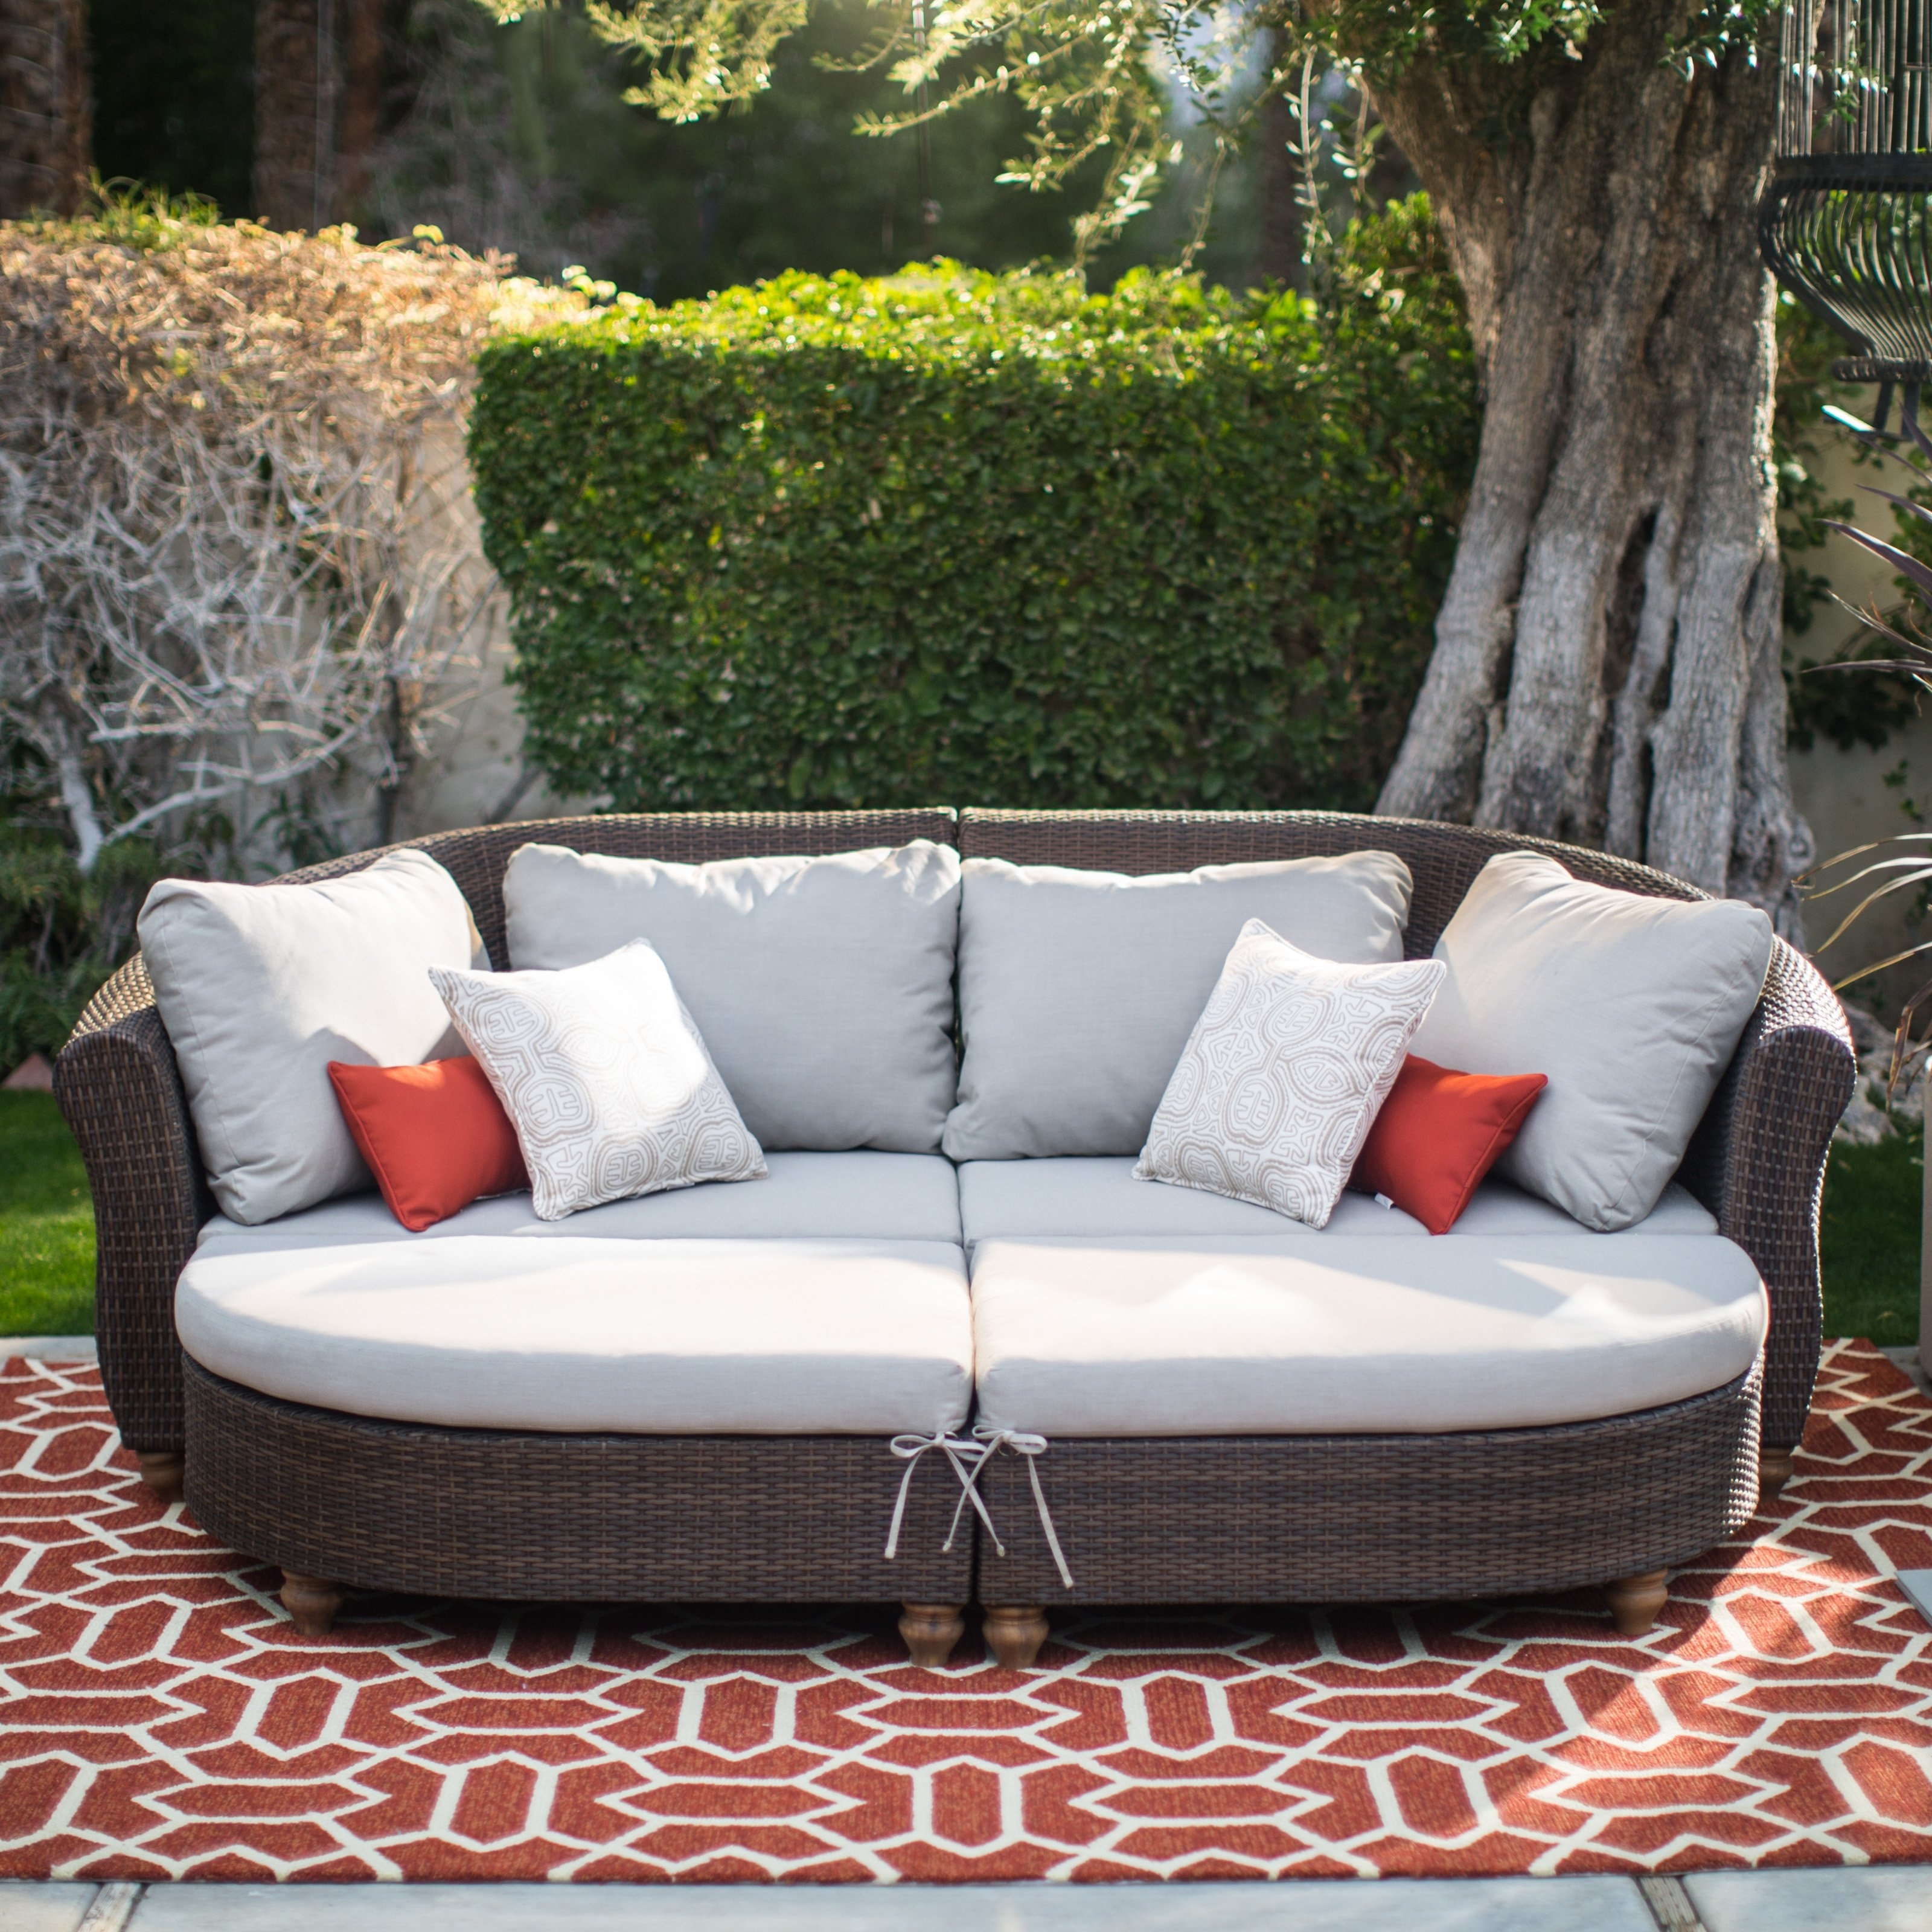 Trendy Patio Conversation Sets At Target With Chair : Outdoor Wicker Resin Piece Sectional Sofa Patio Furniture (View 17 of 20)